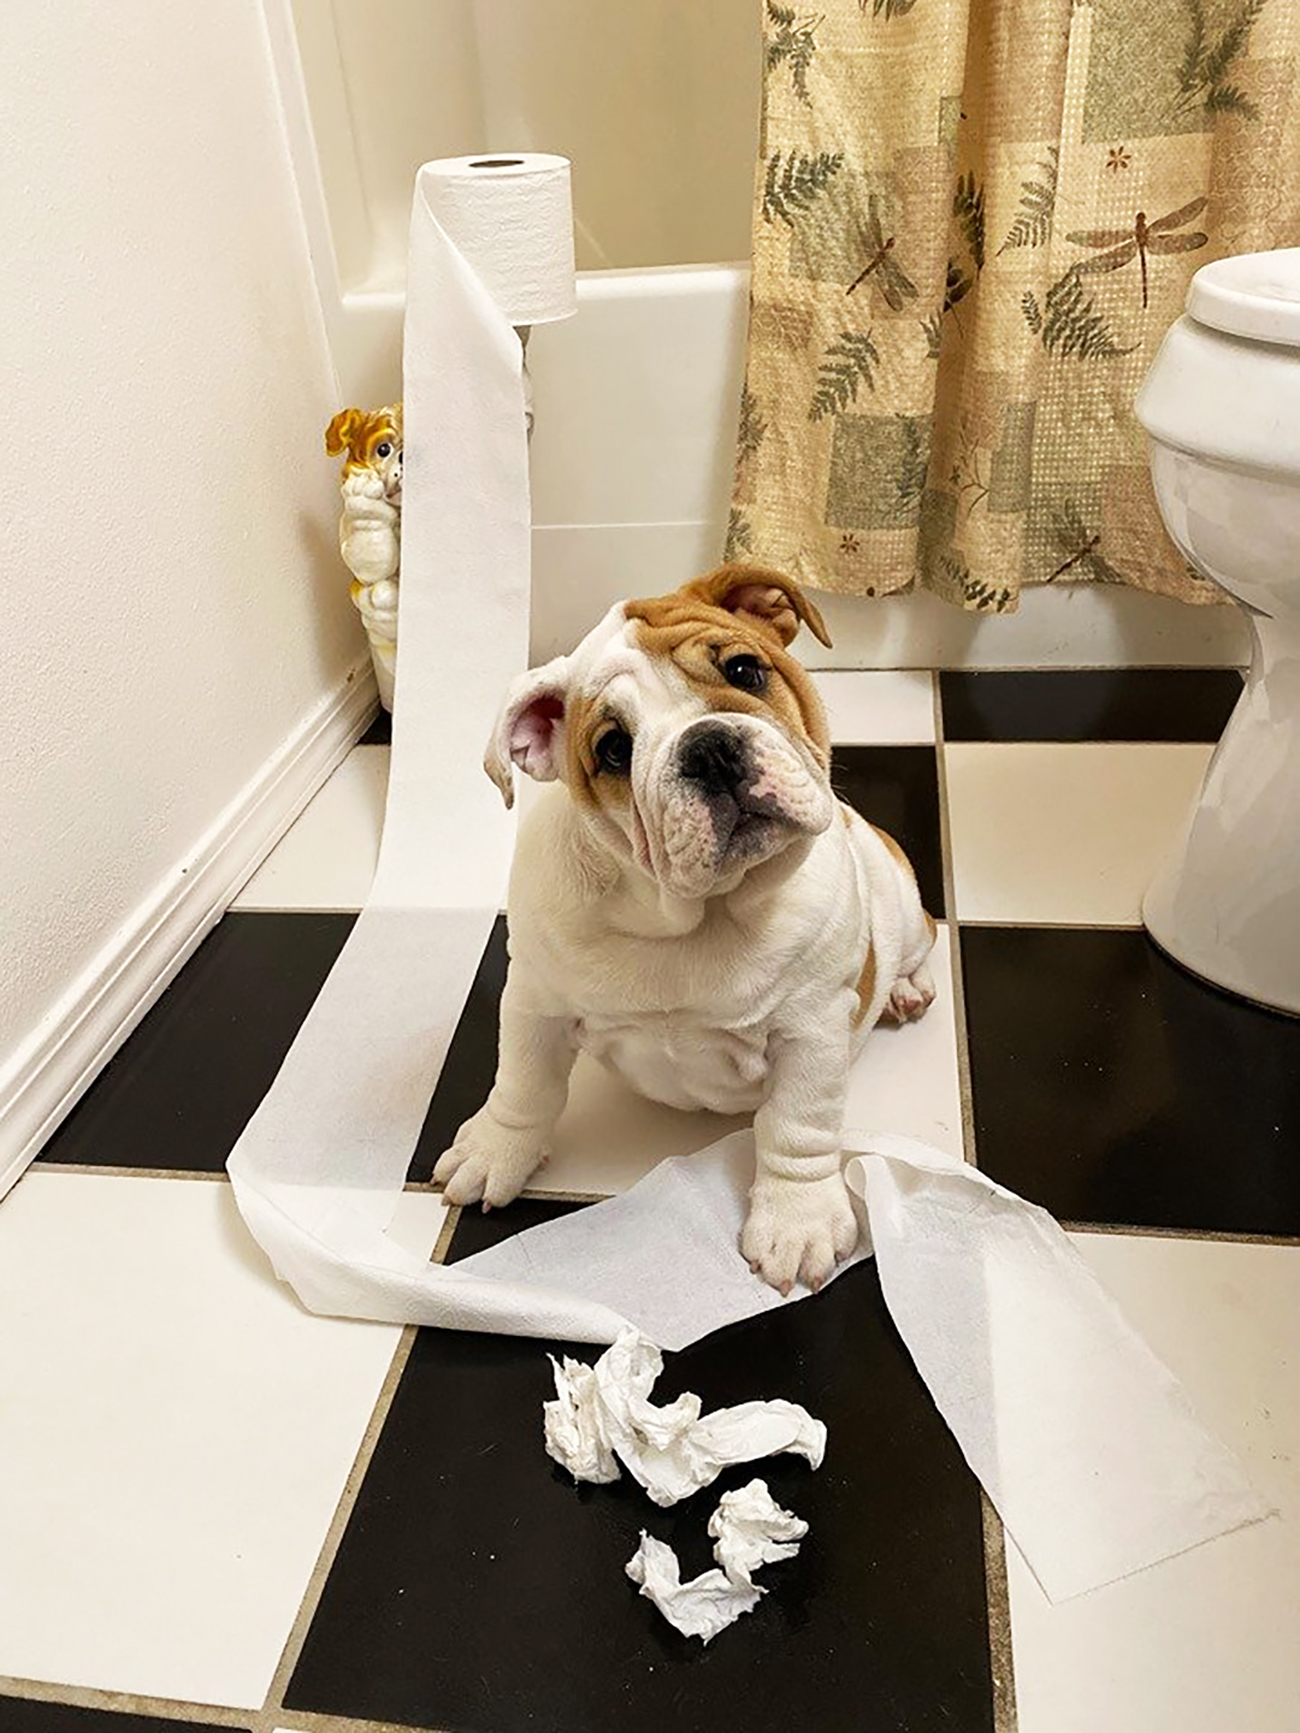 Bulldog puppy plays with toilet paper